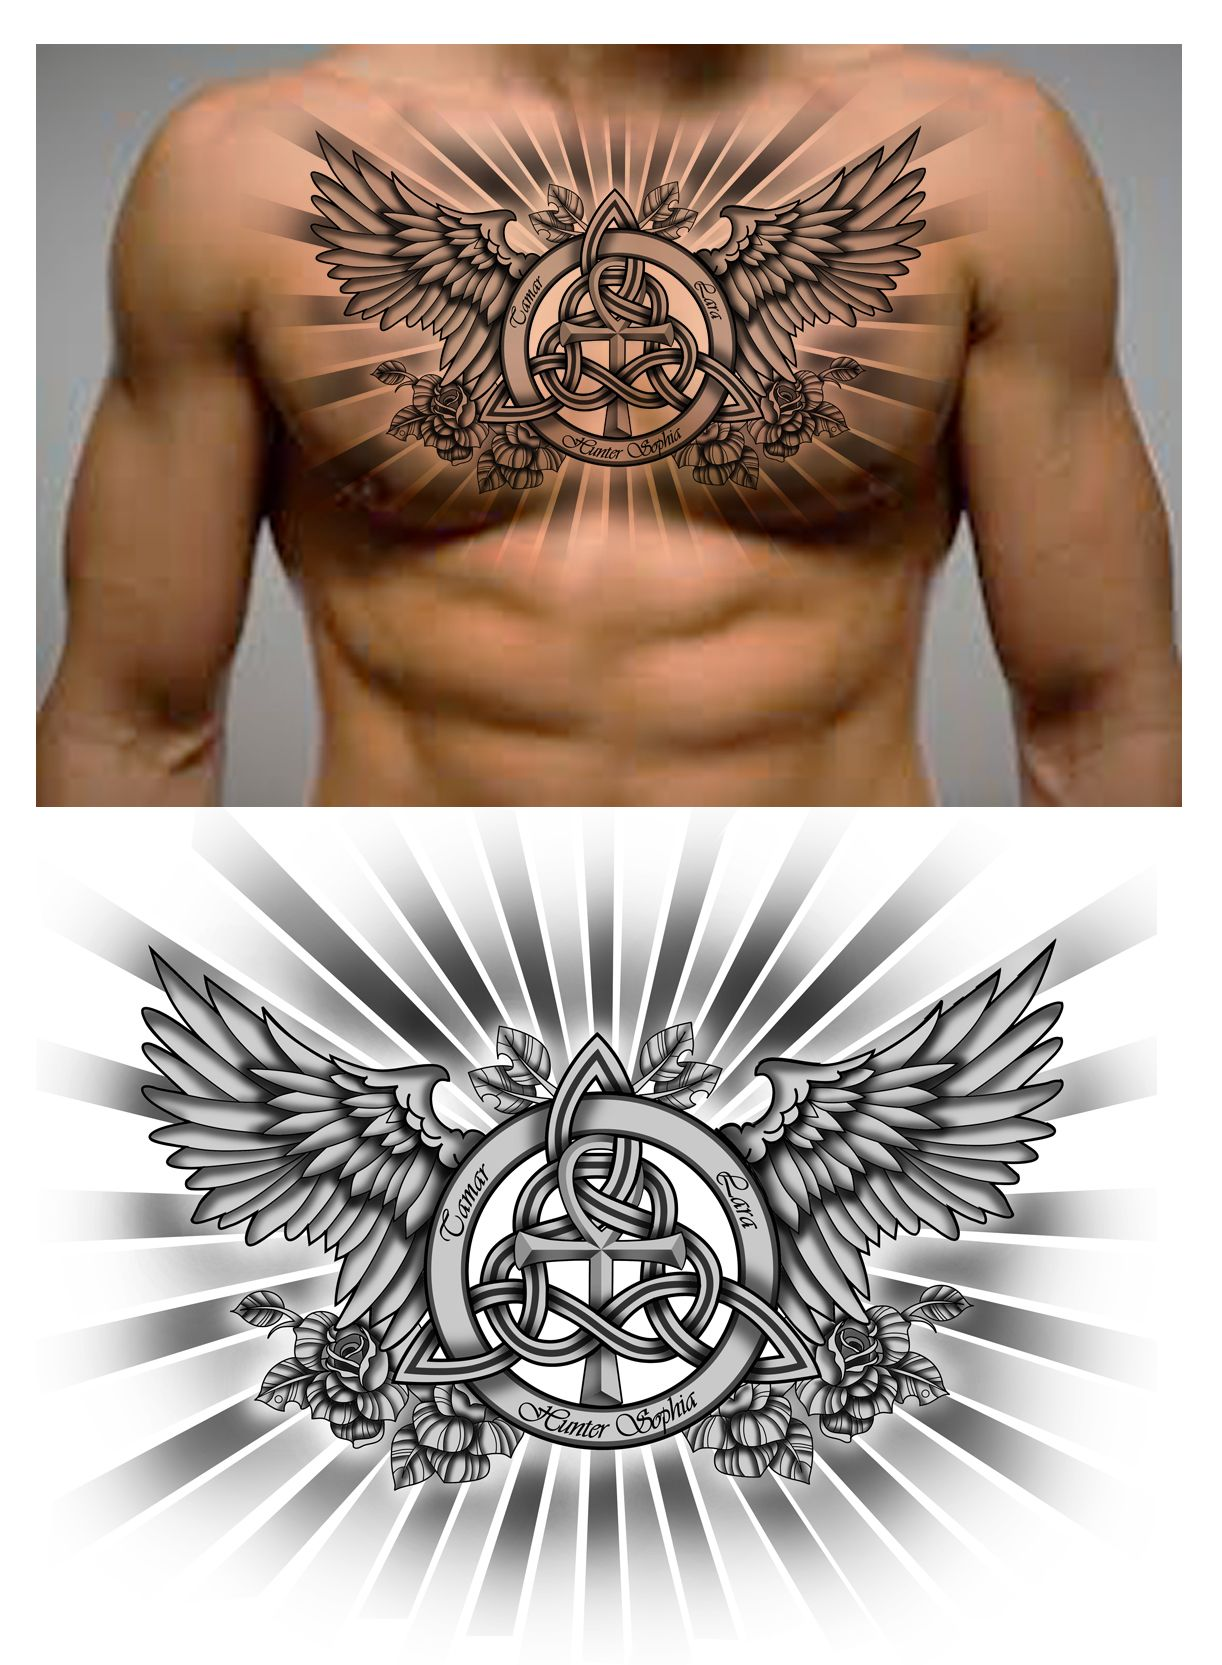 Family trinity knot with names and ankh symbol in it chest piece family trinity knot with names and ankh symbol in it chest piece buycottarizona Images